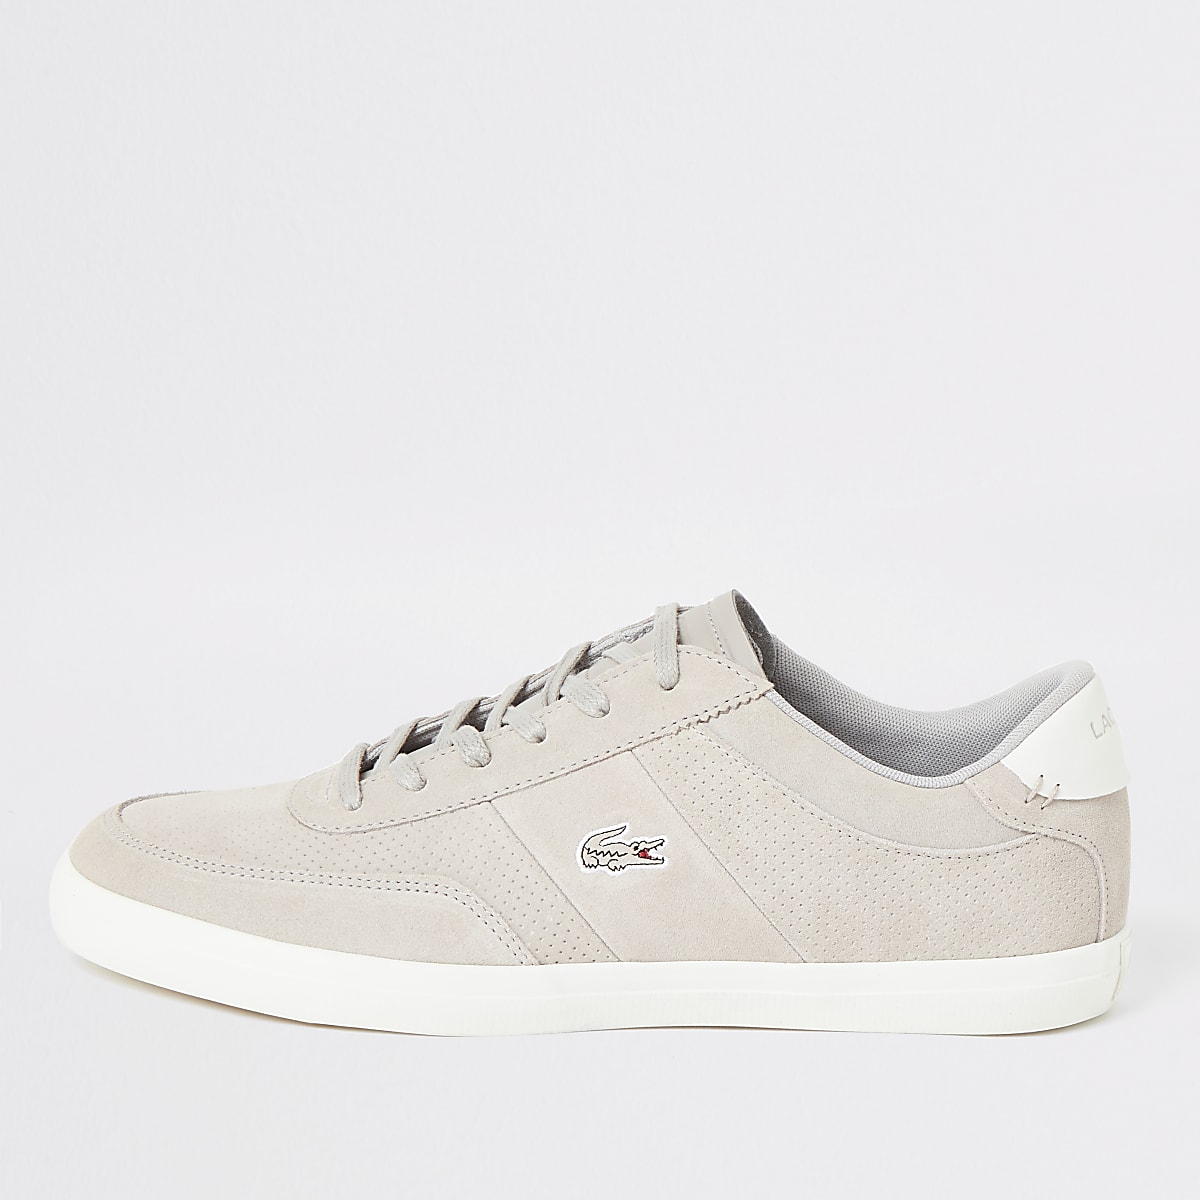 Lacoste – Courtmaster – Graue Sneaker